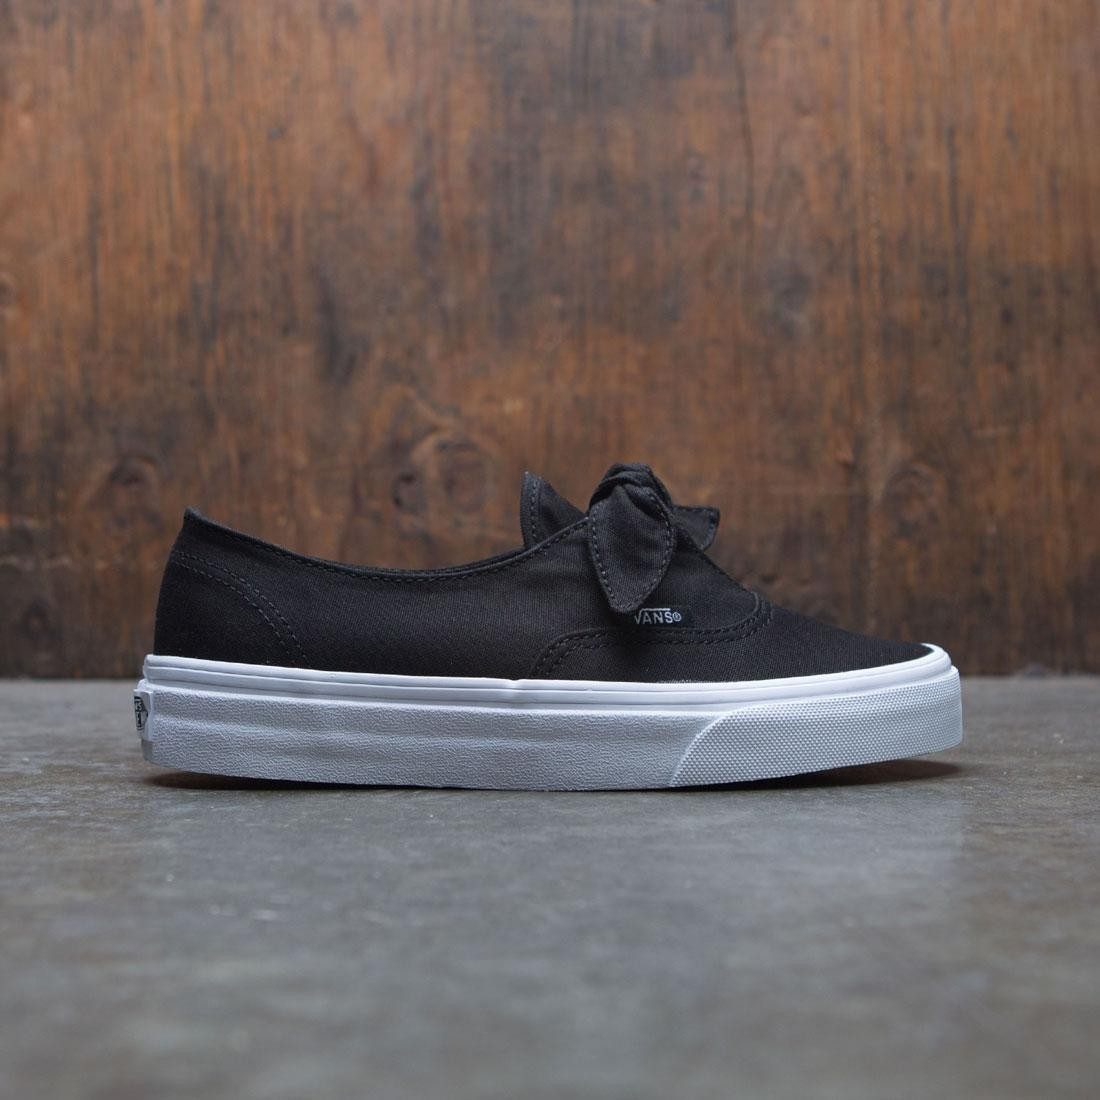 Vans Women Authentic Knotted black white